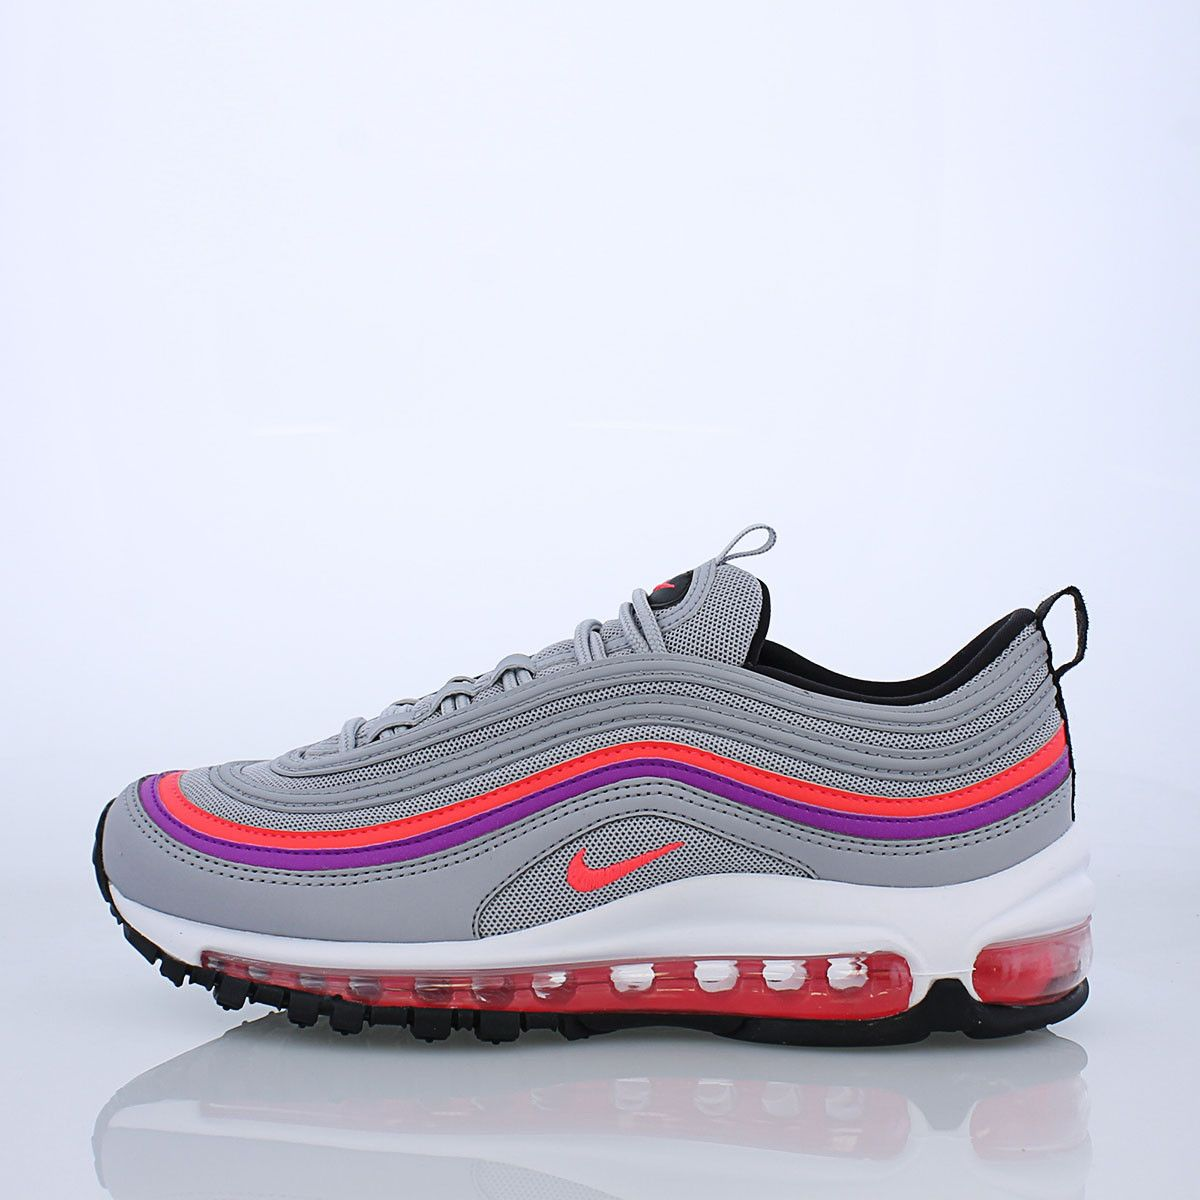 84a5f595e642 YCMC.com brings you an Air Max 97 from Nike complete with a bright and  feminine colorway featuring a versatile material with swooping lines  featuring an ...